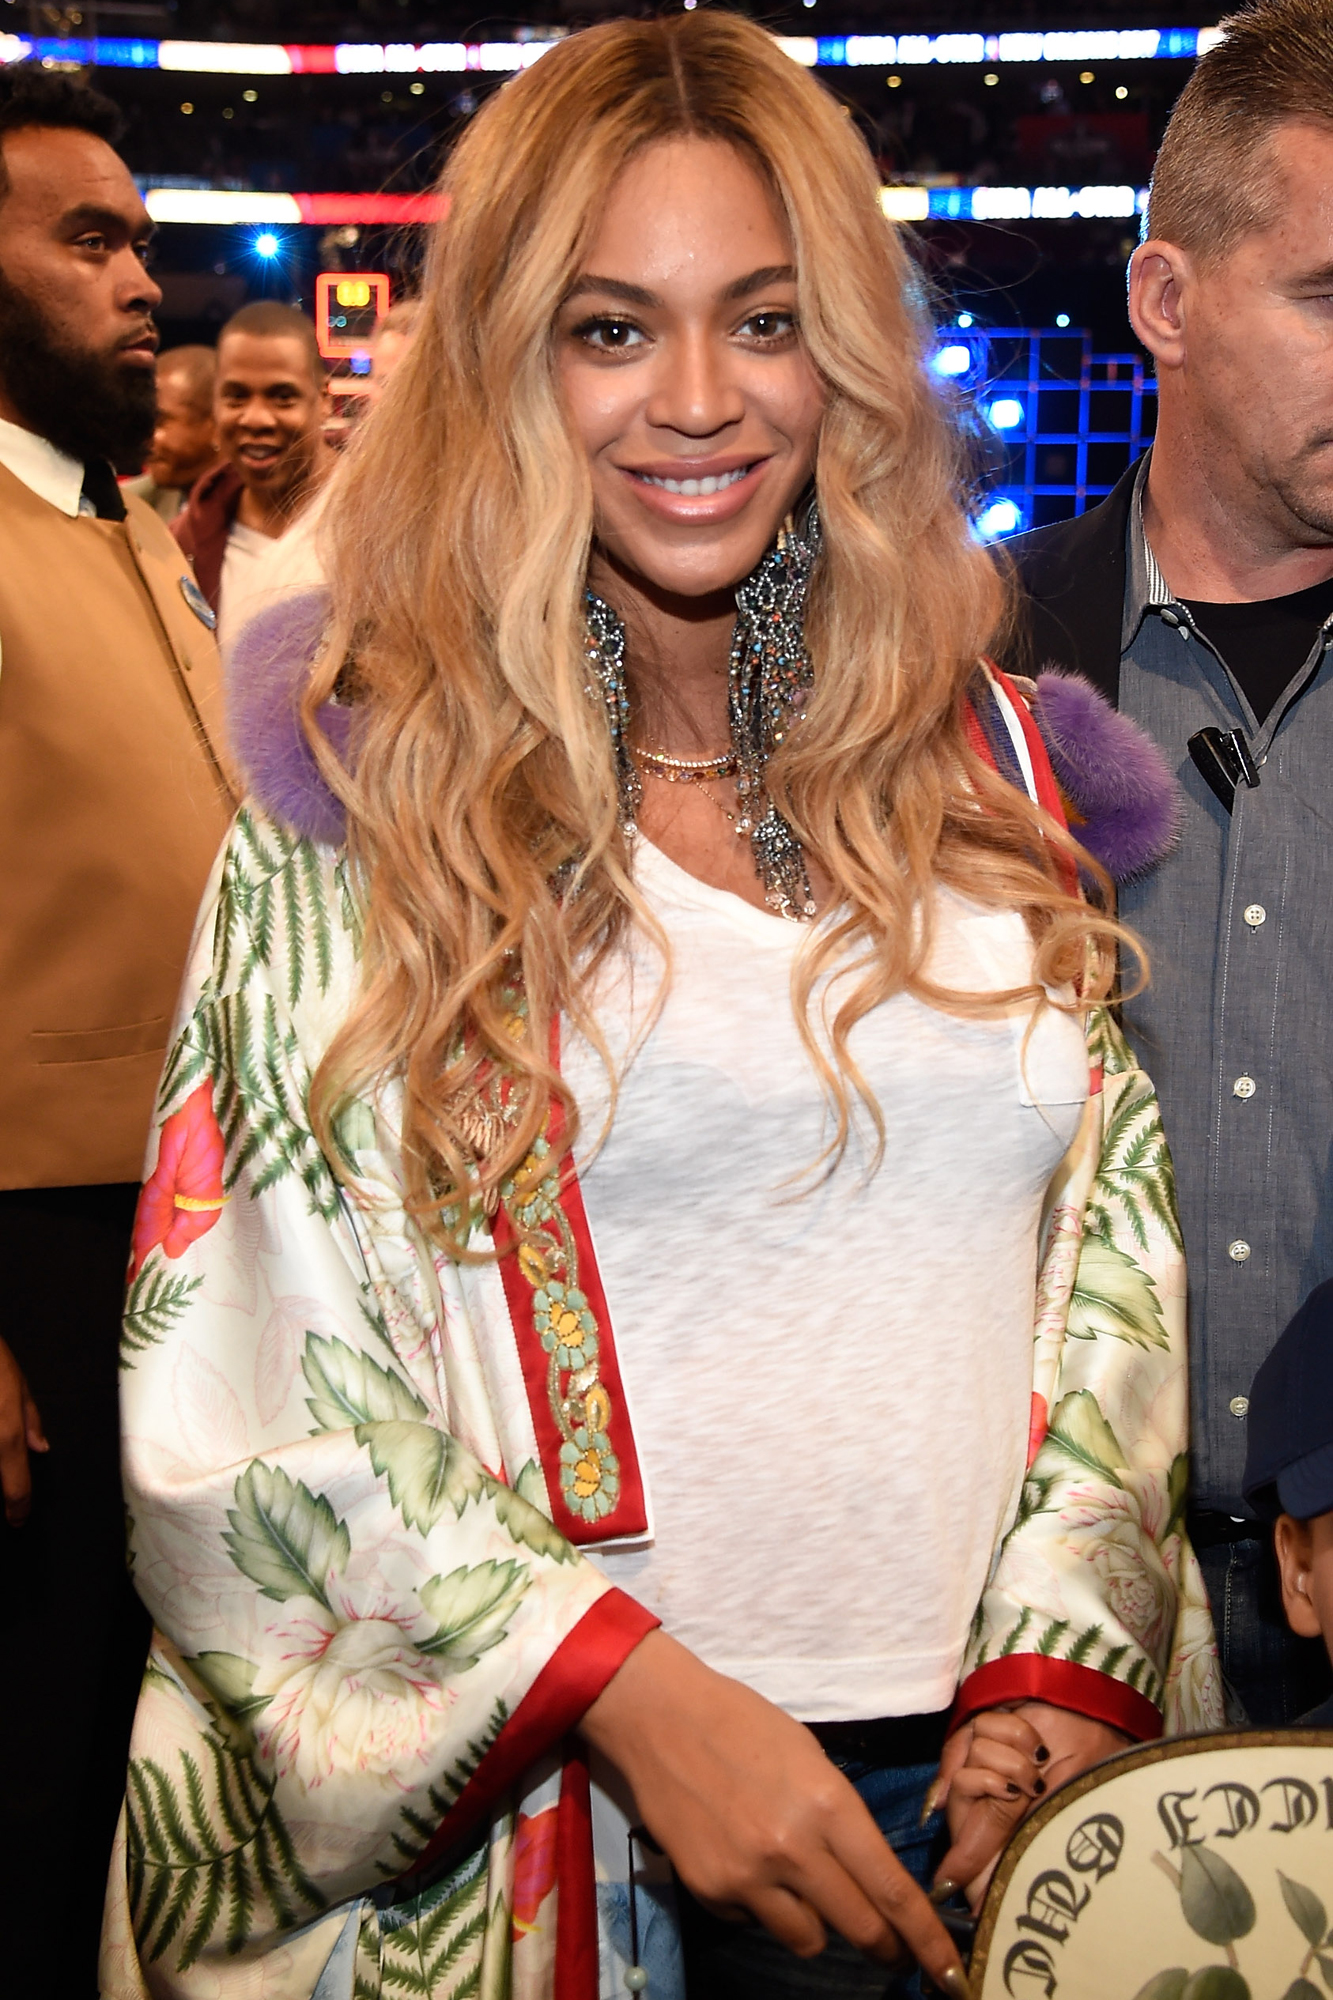 Beyoncé Announces 3 New Flavors of Watermelon Water